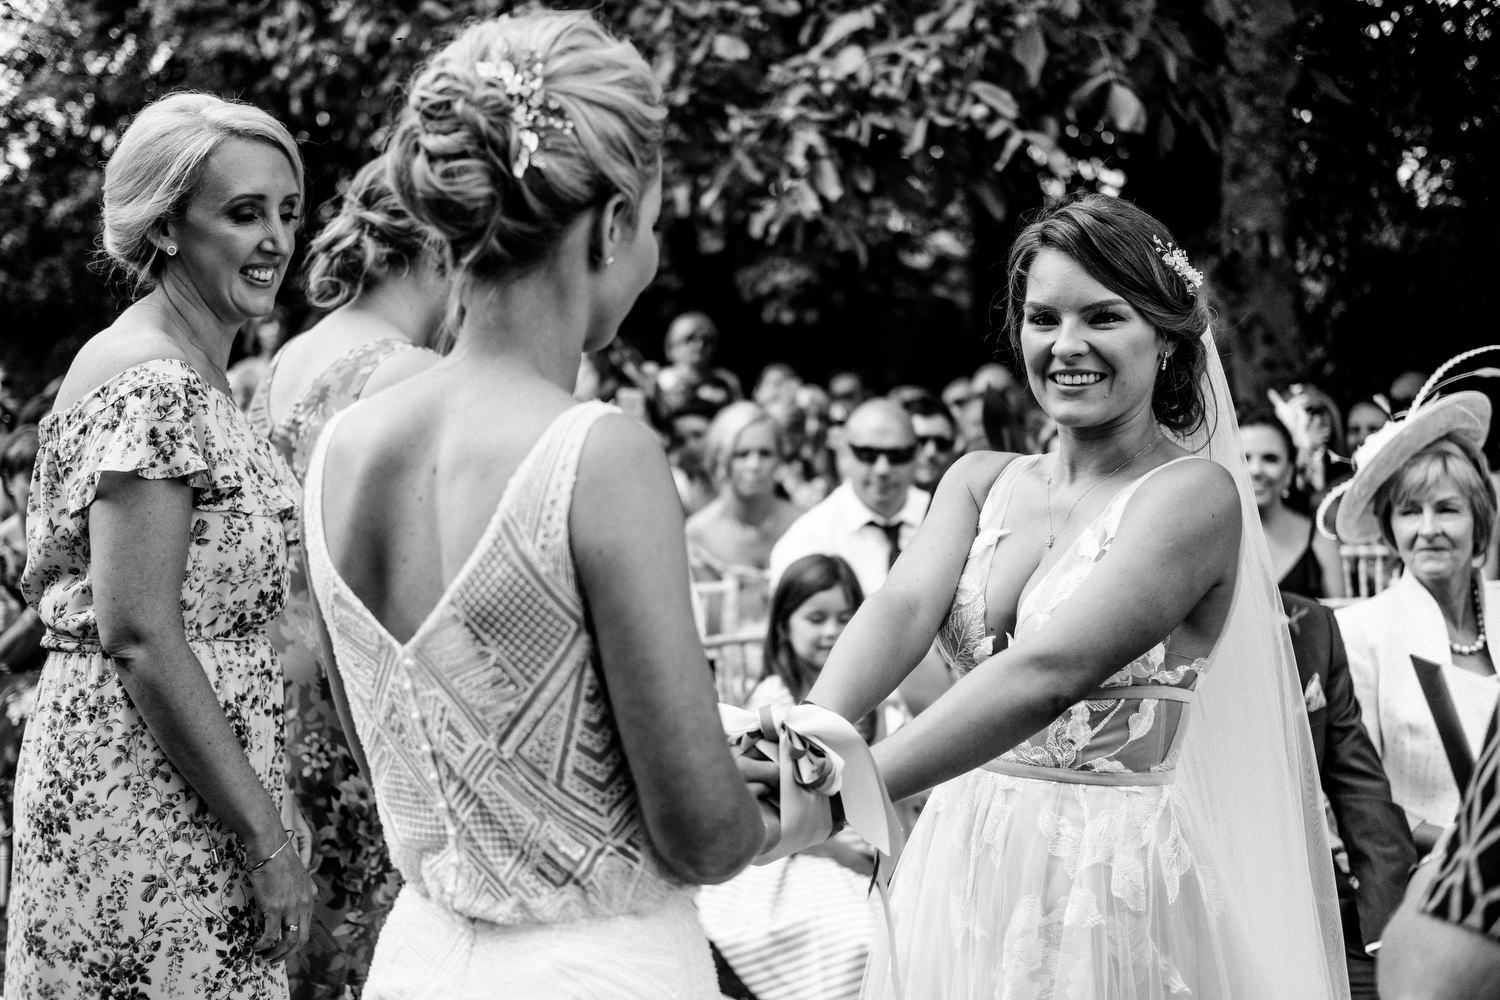 dmp0493_candid_brides_gay_ballintubbert_photography_ireland_ceremony_laois_documentary_outdoor_relaxed_twobrides_wedding_samesex_house_fun